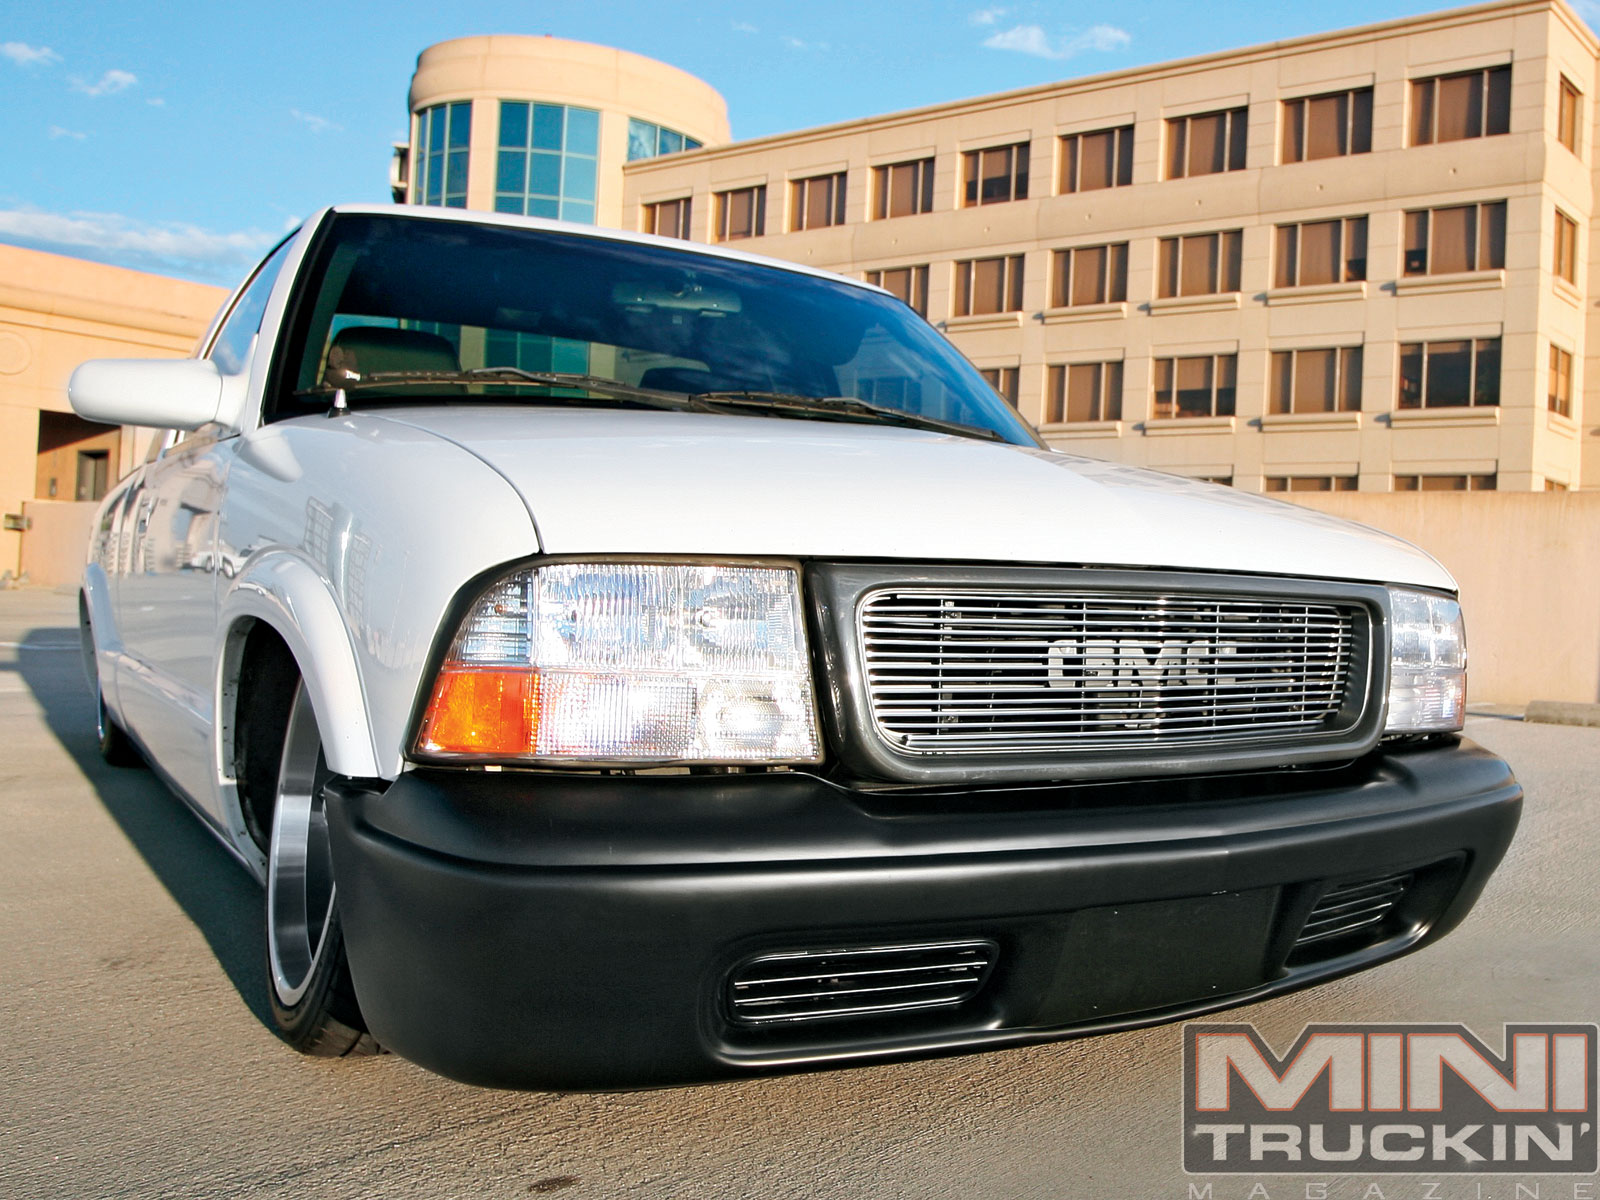 Chevy S10 Gmc Sonoma Front End Replacement Mini Truckin Magazine